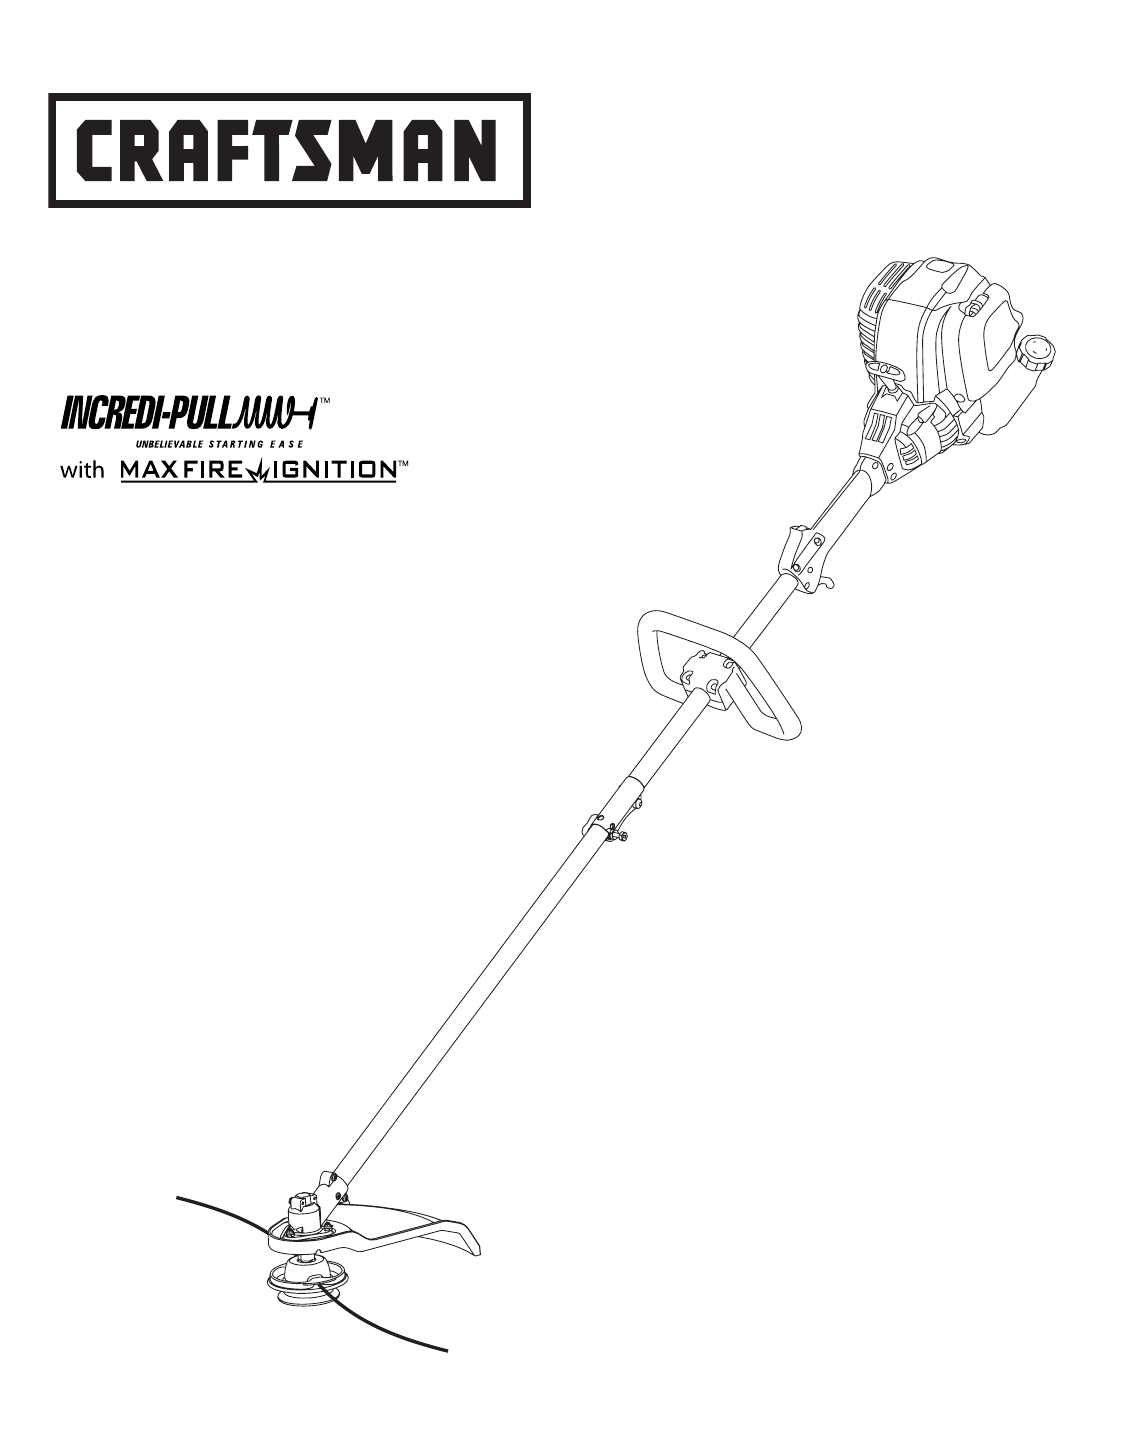 Craftsman Trimmer 316 User Guide